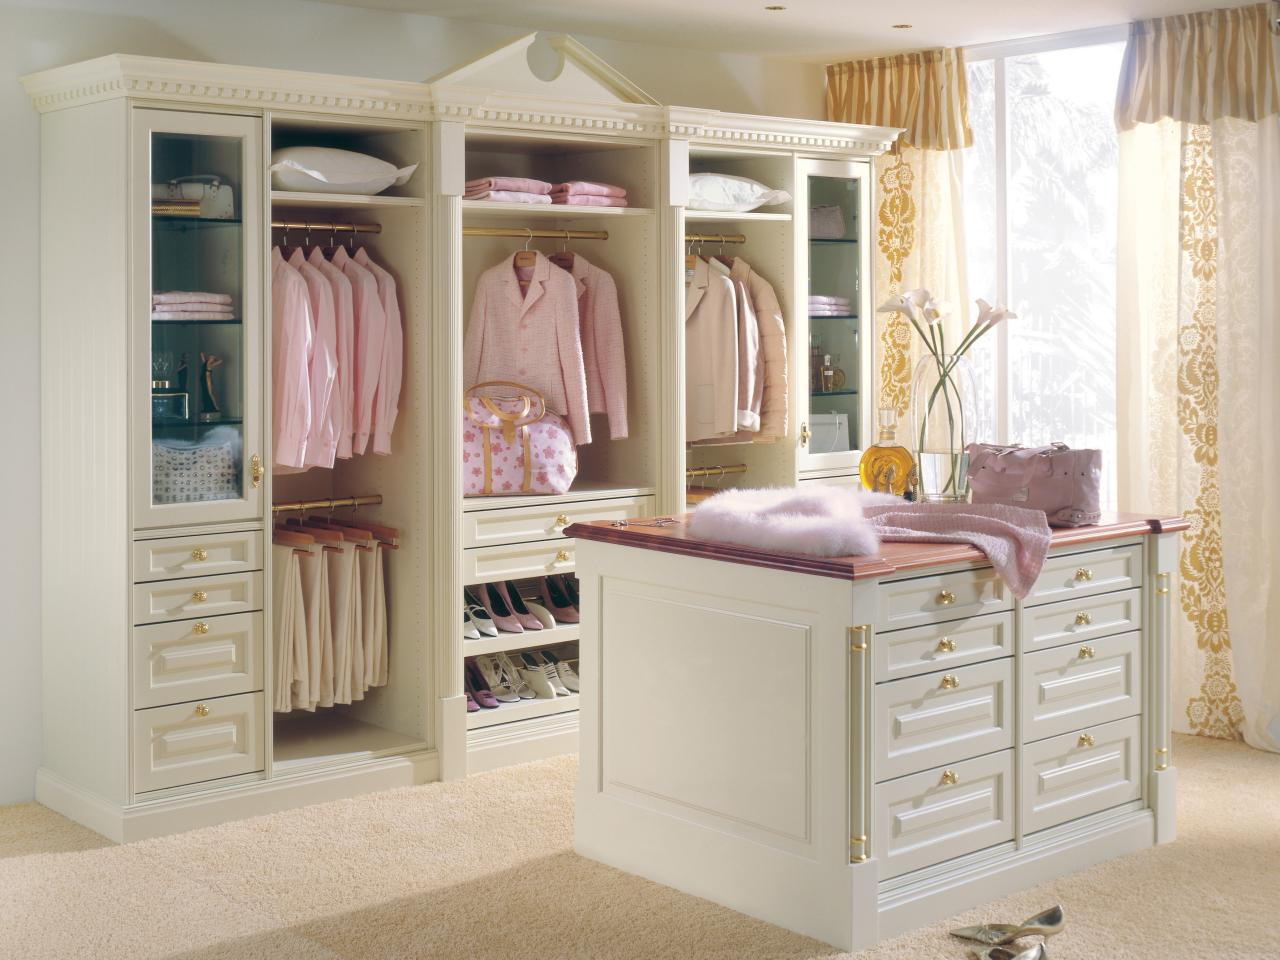 walk in closet decorating ideas photo - 10